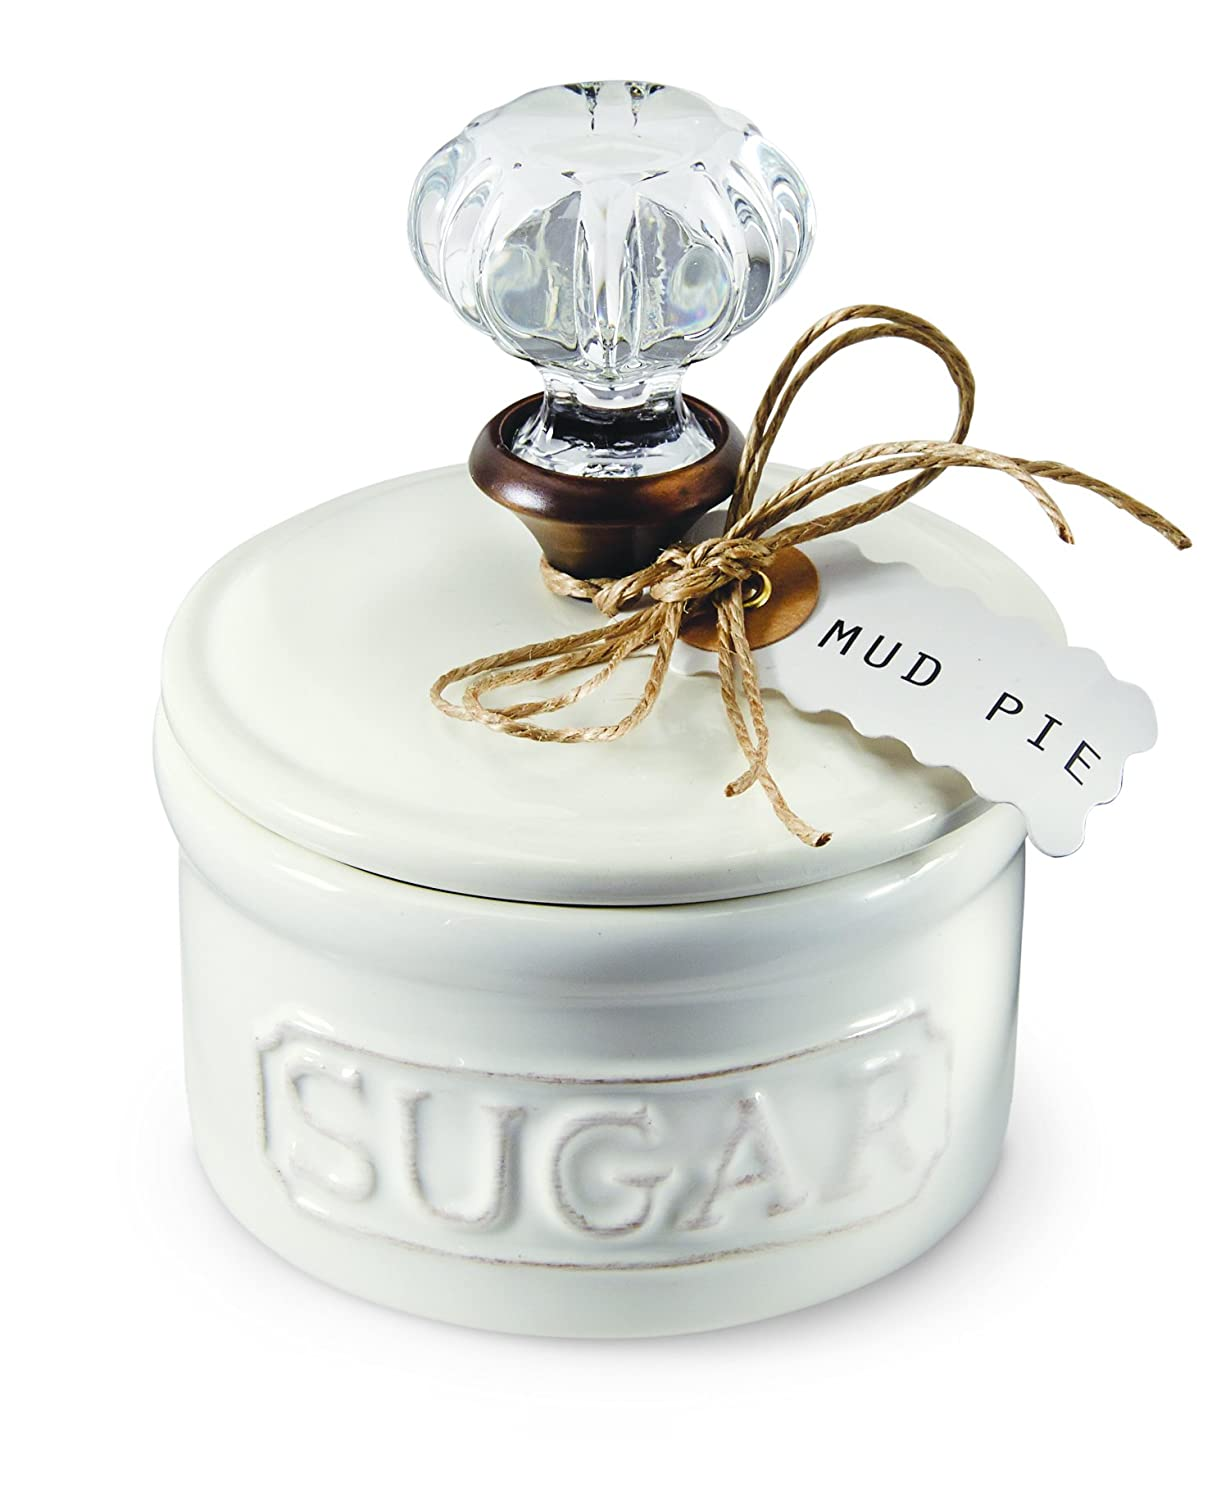 Mud Pie Door Knob Sugar Bowl, White (4781004)